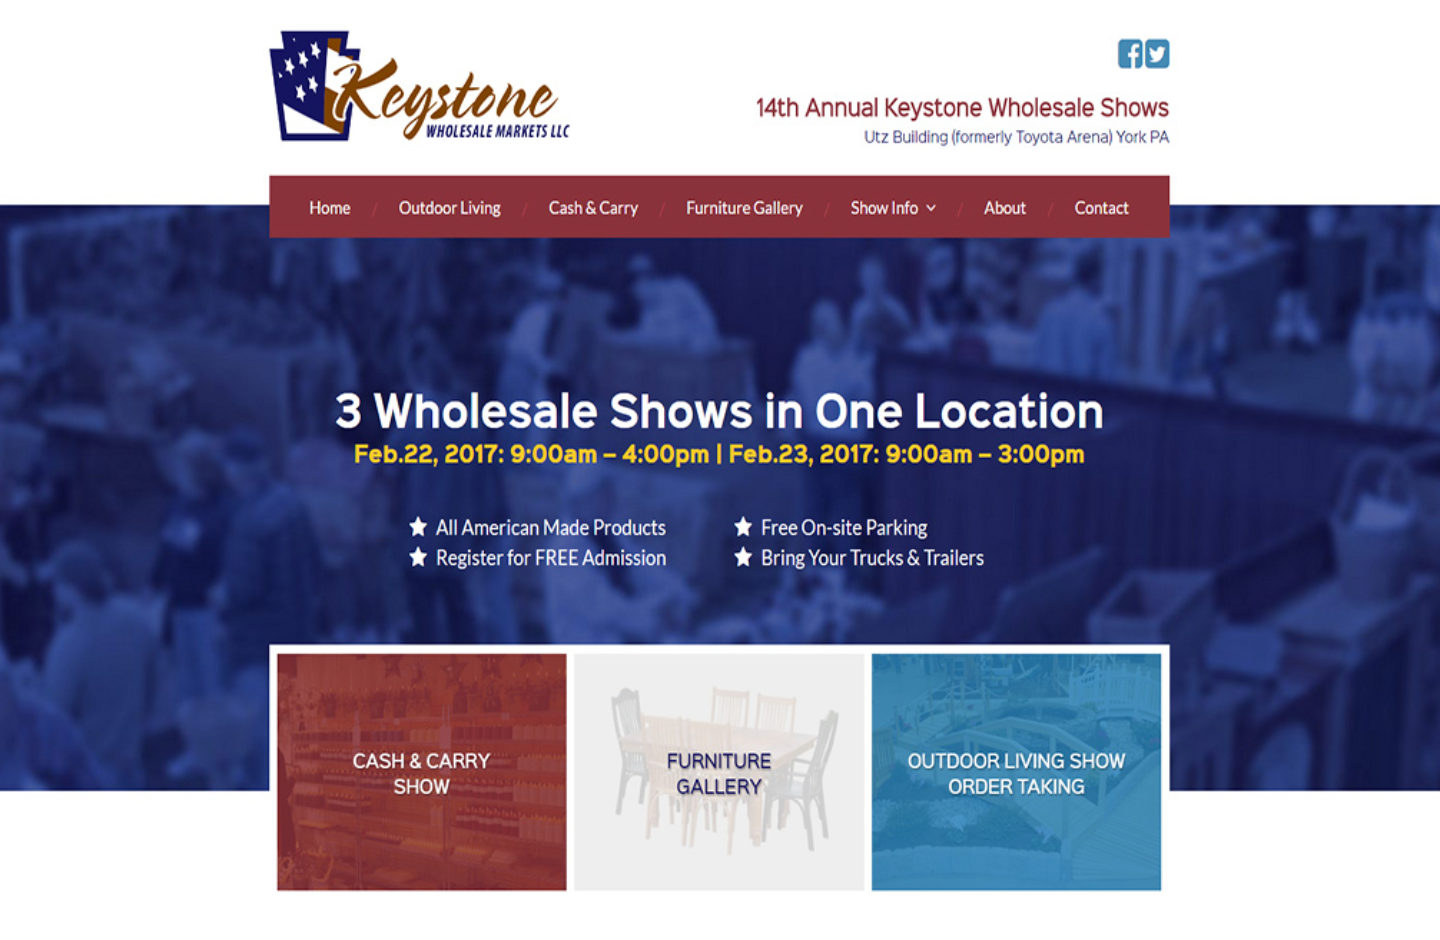 Keystone Wholesale Markets